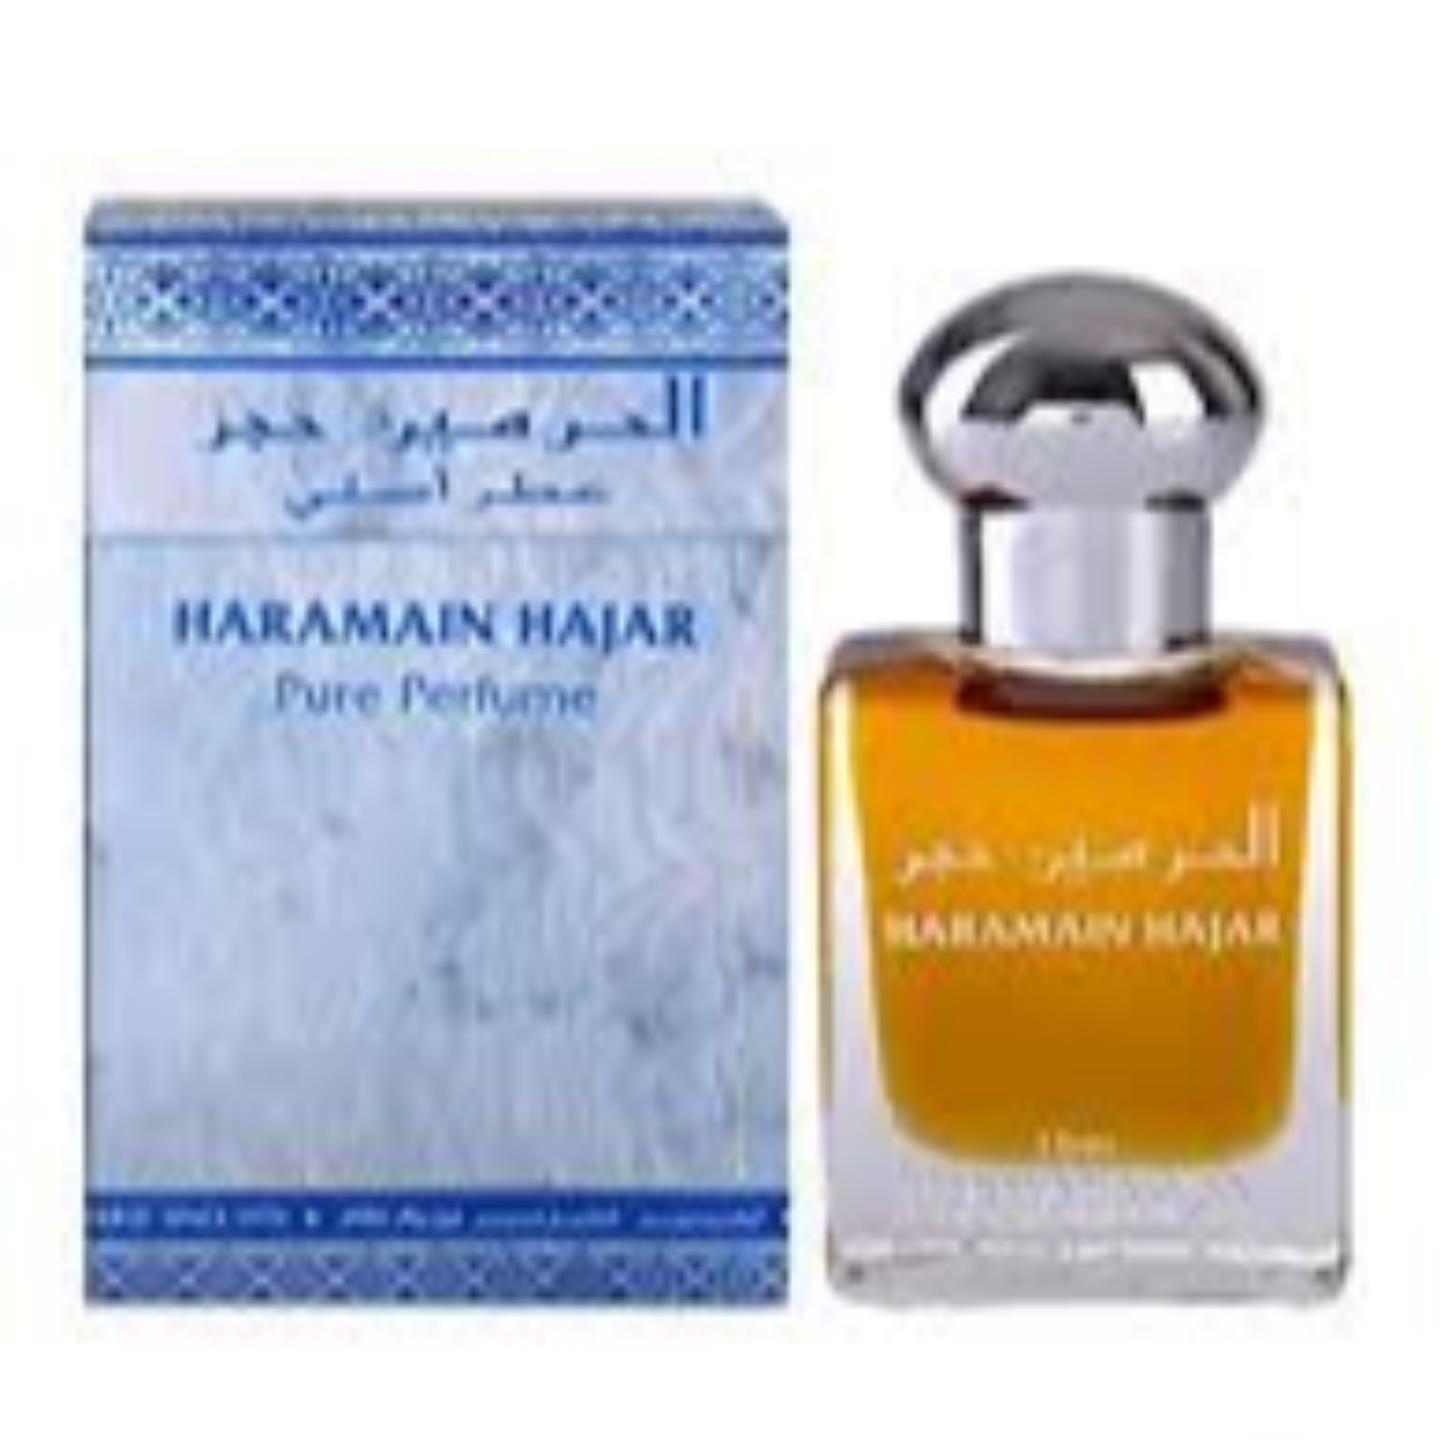 AL HARAMAIN HAJAR ATTAR